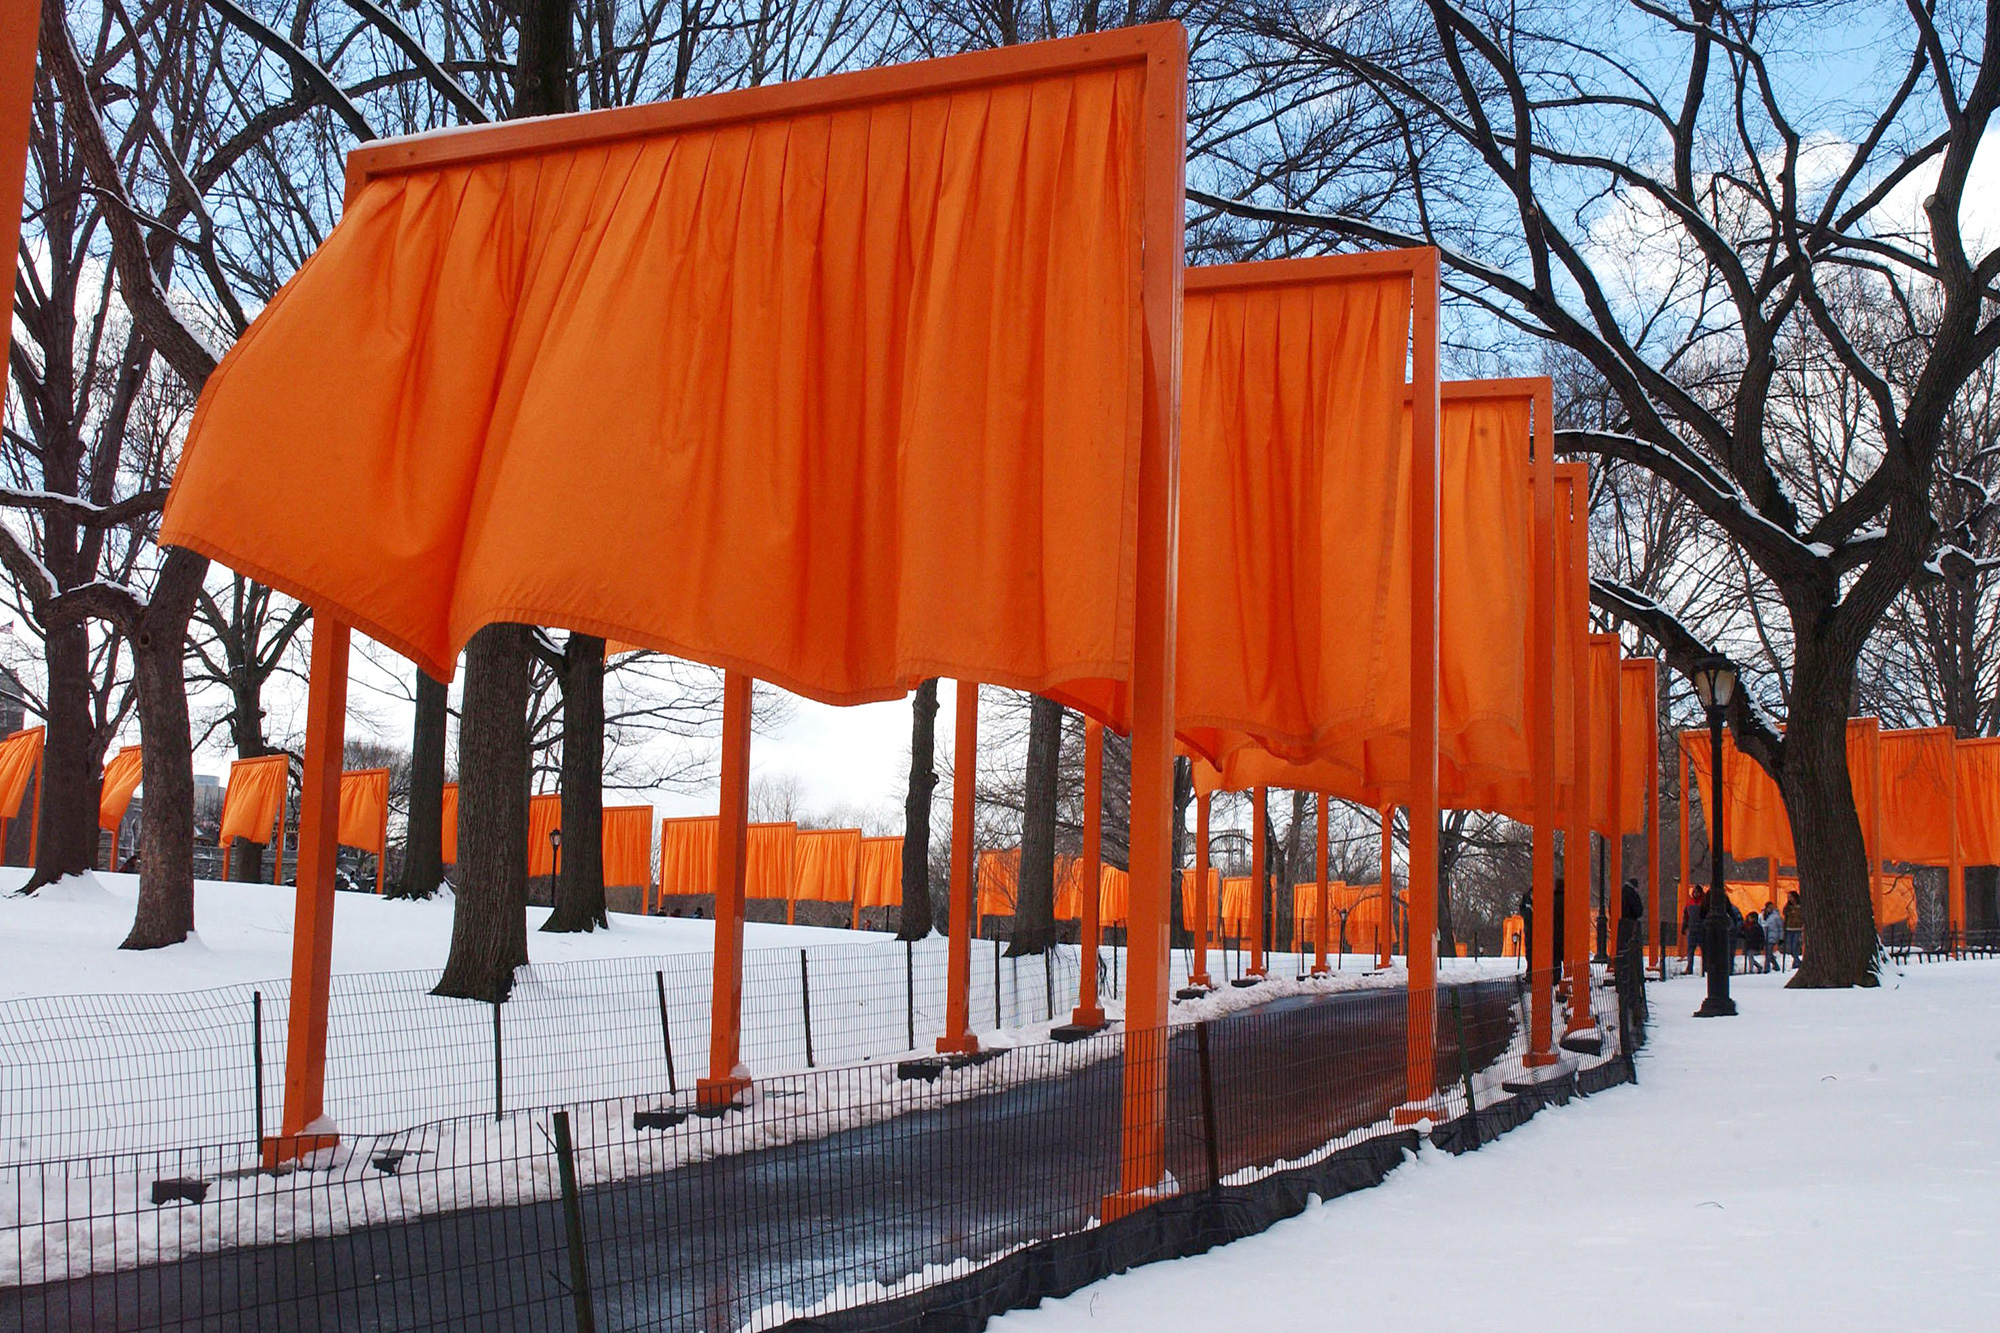 JEANNE CLAUDE AND CHRISTO 'THE GATES' ART PROJECT, CENTRAL PARK, NEW YORK, AMERICA - 25 FEB 2005